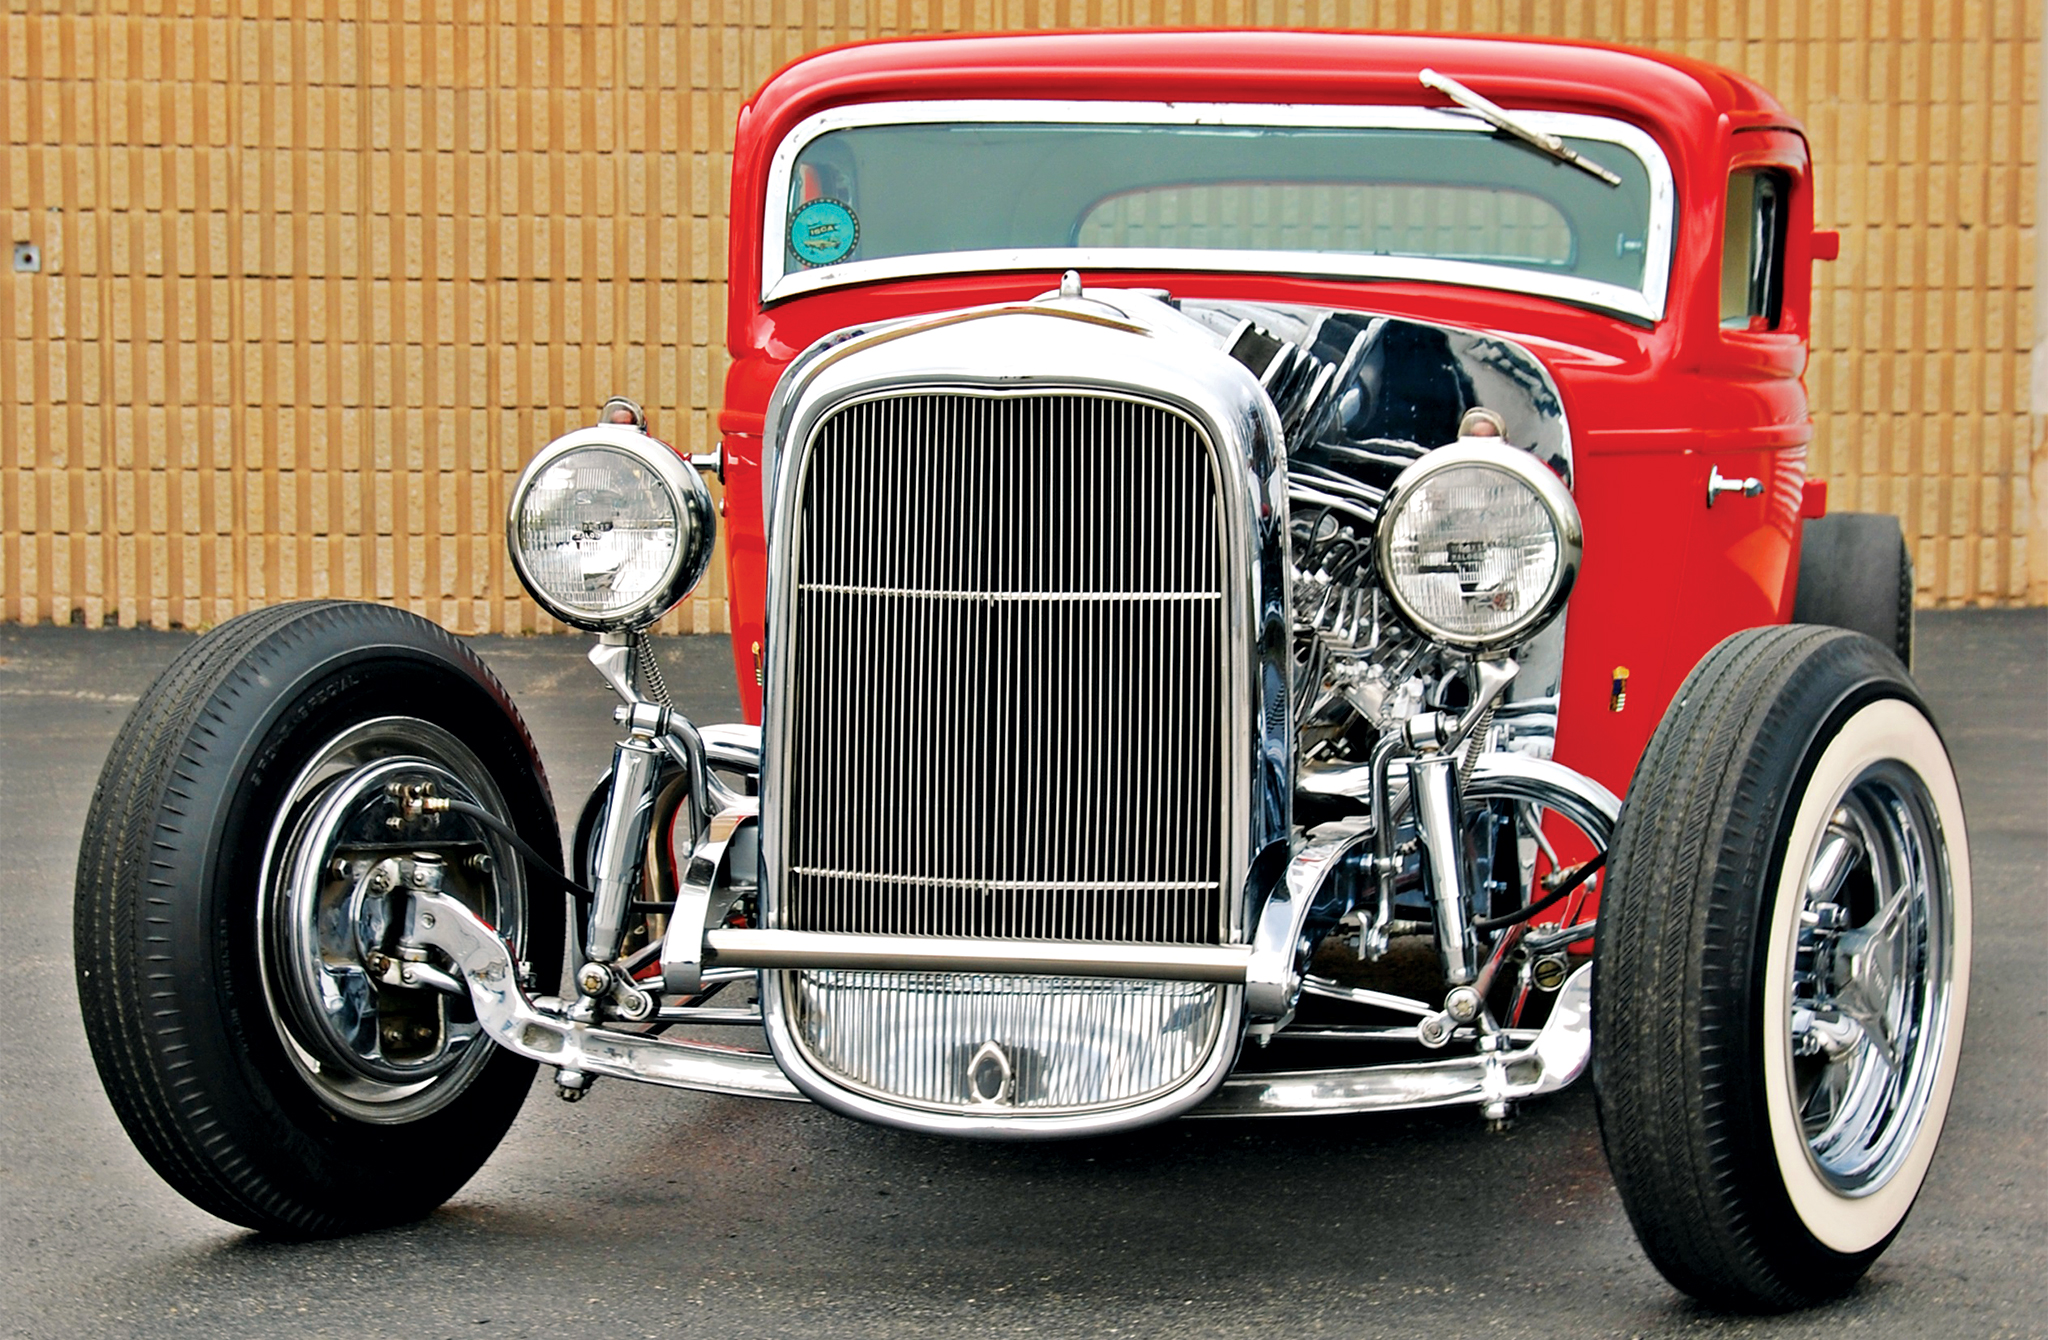 When most guys channeled their rides, they usually cut down the front grille in proportion to the body modification. Not Andy. He loved the look of the original fullsize front end piece. He's known as the first customizer to make the fullsize grille fit and look good on a heavily channeled rod. The triple chrome plate helped Andy's grille stand out from the competition.